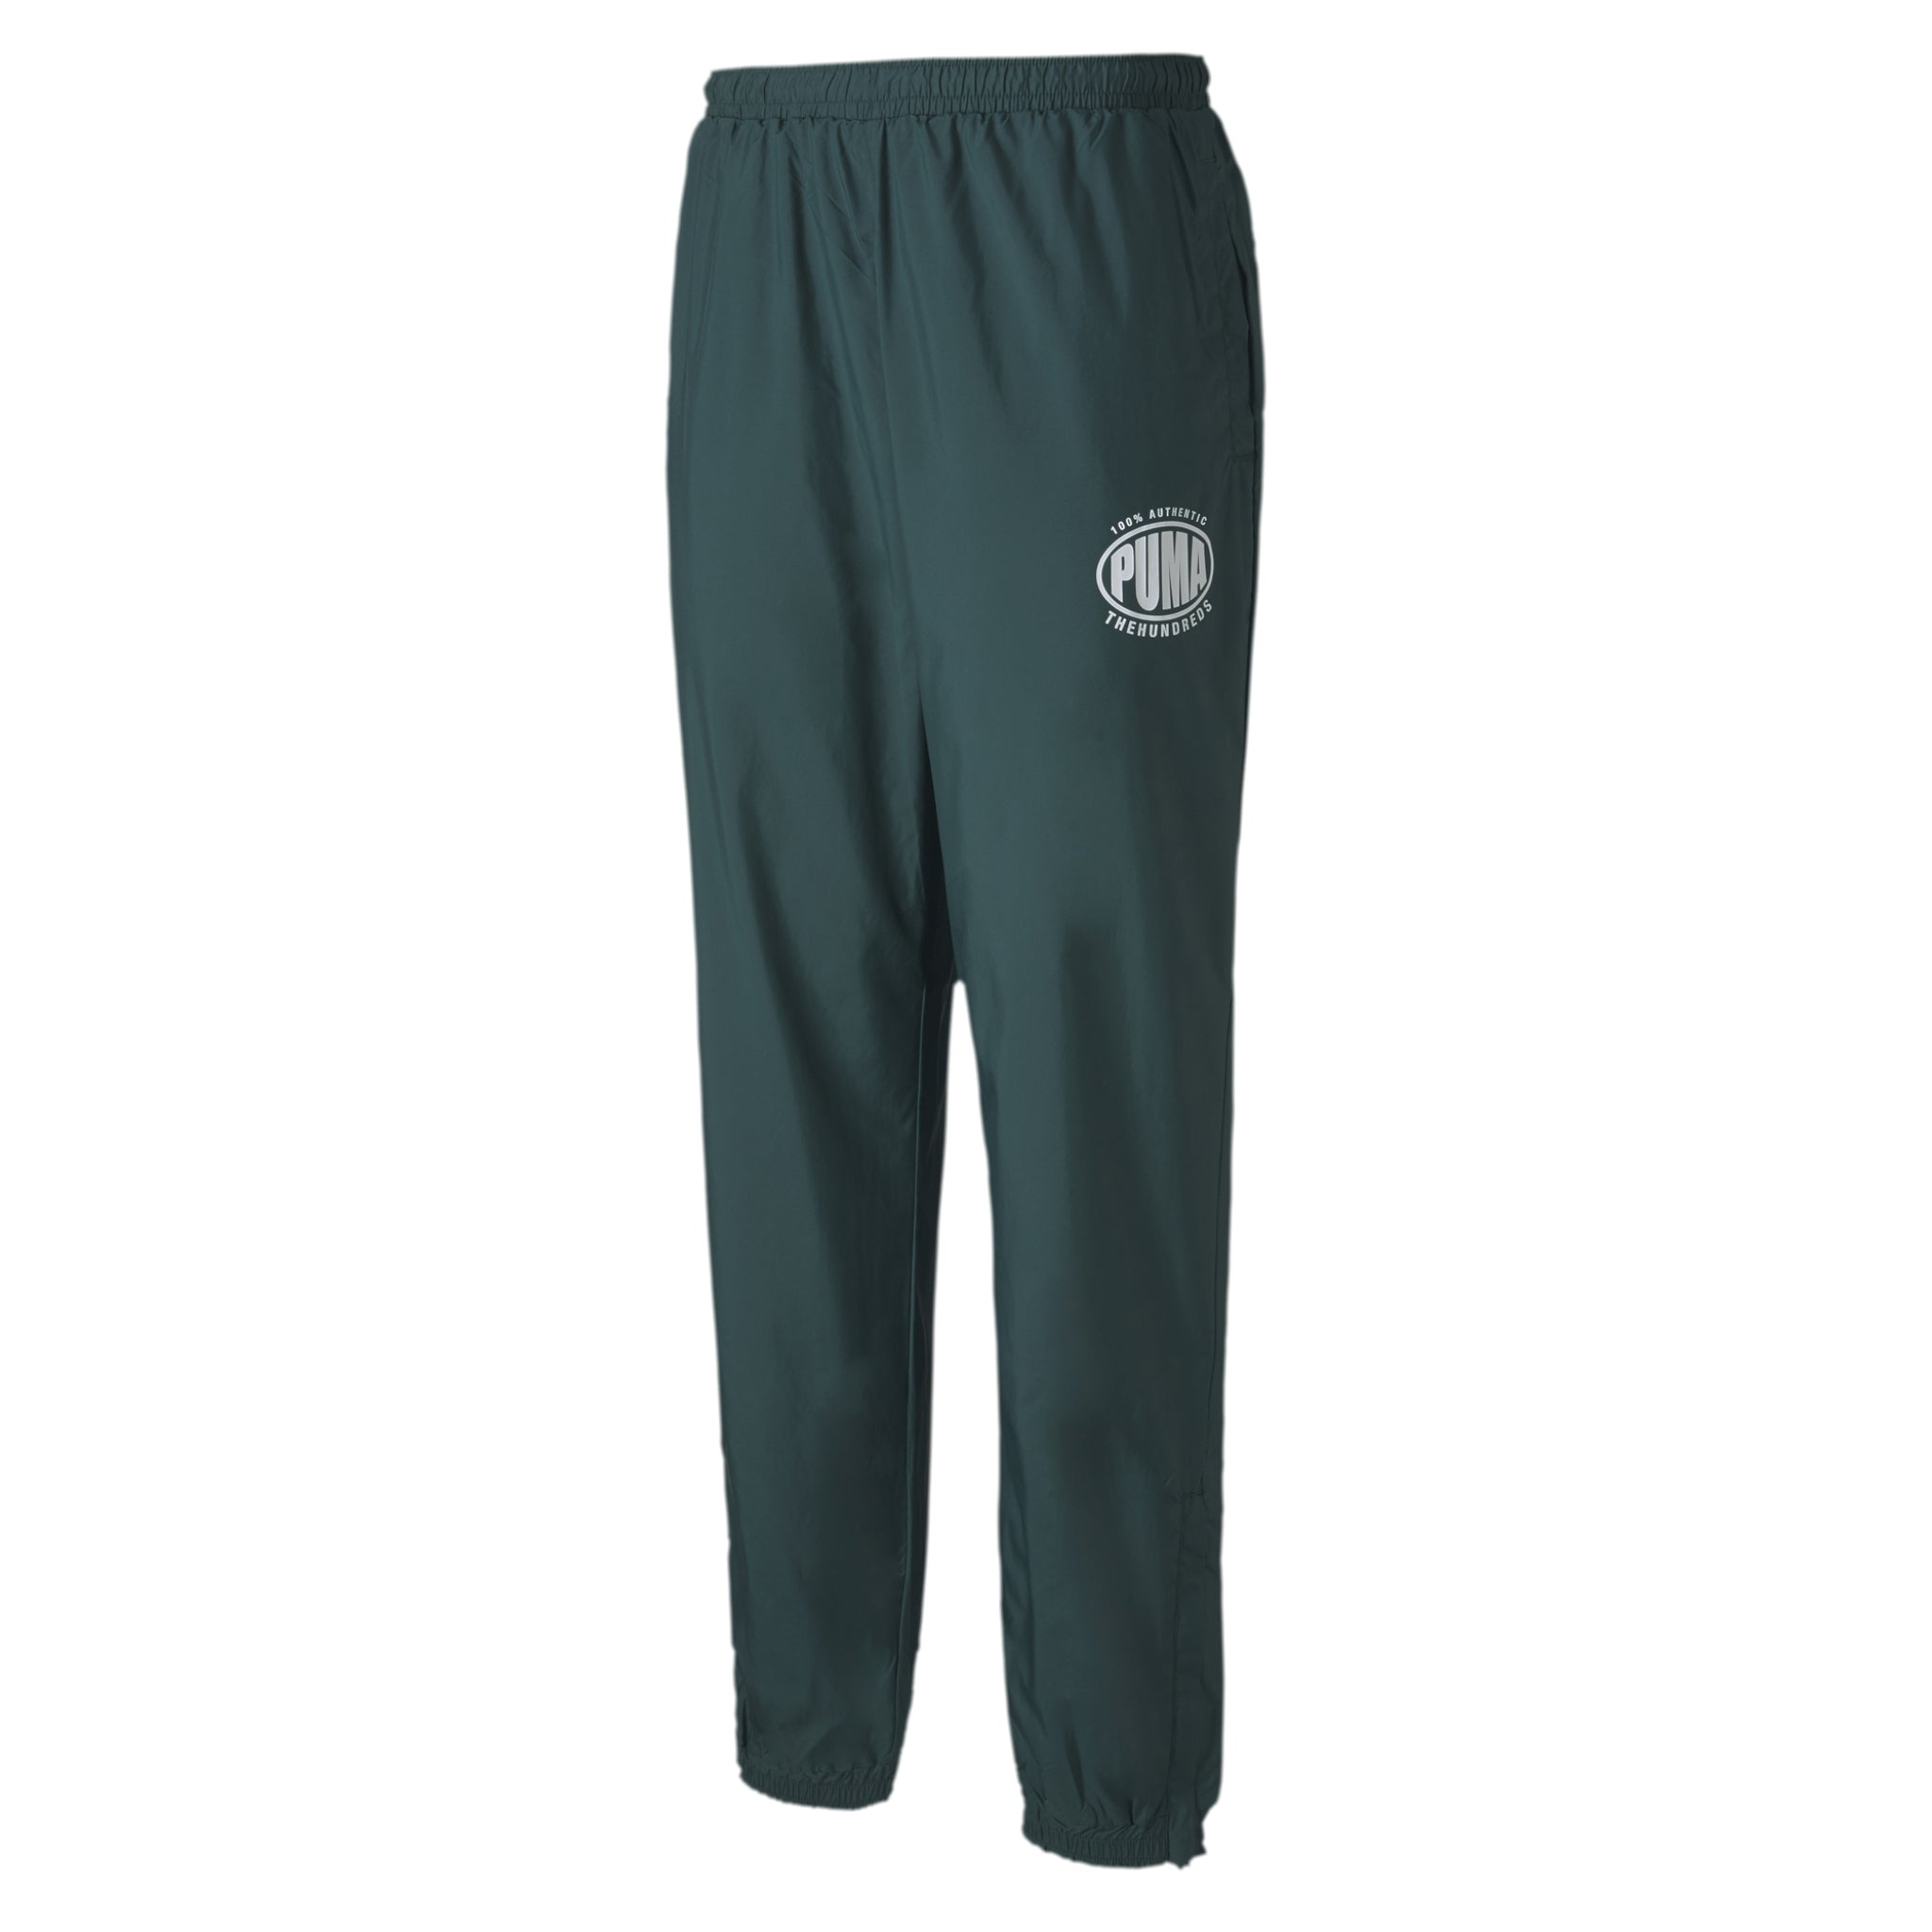 Puma x THE HUNDREDS Track Pants Green